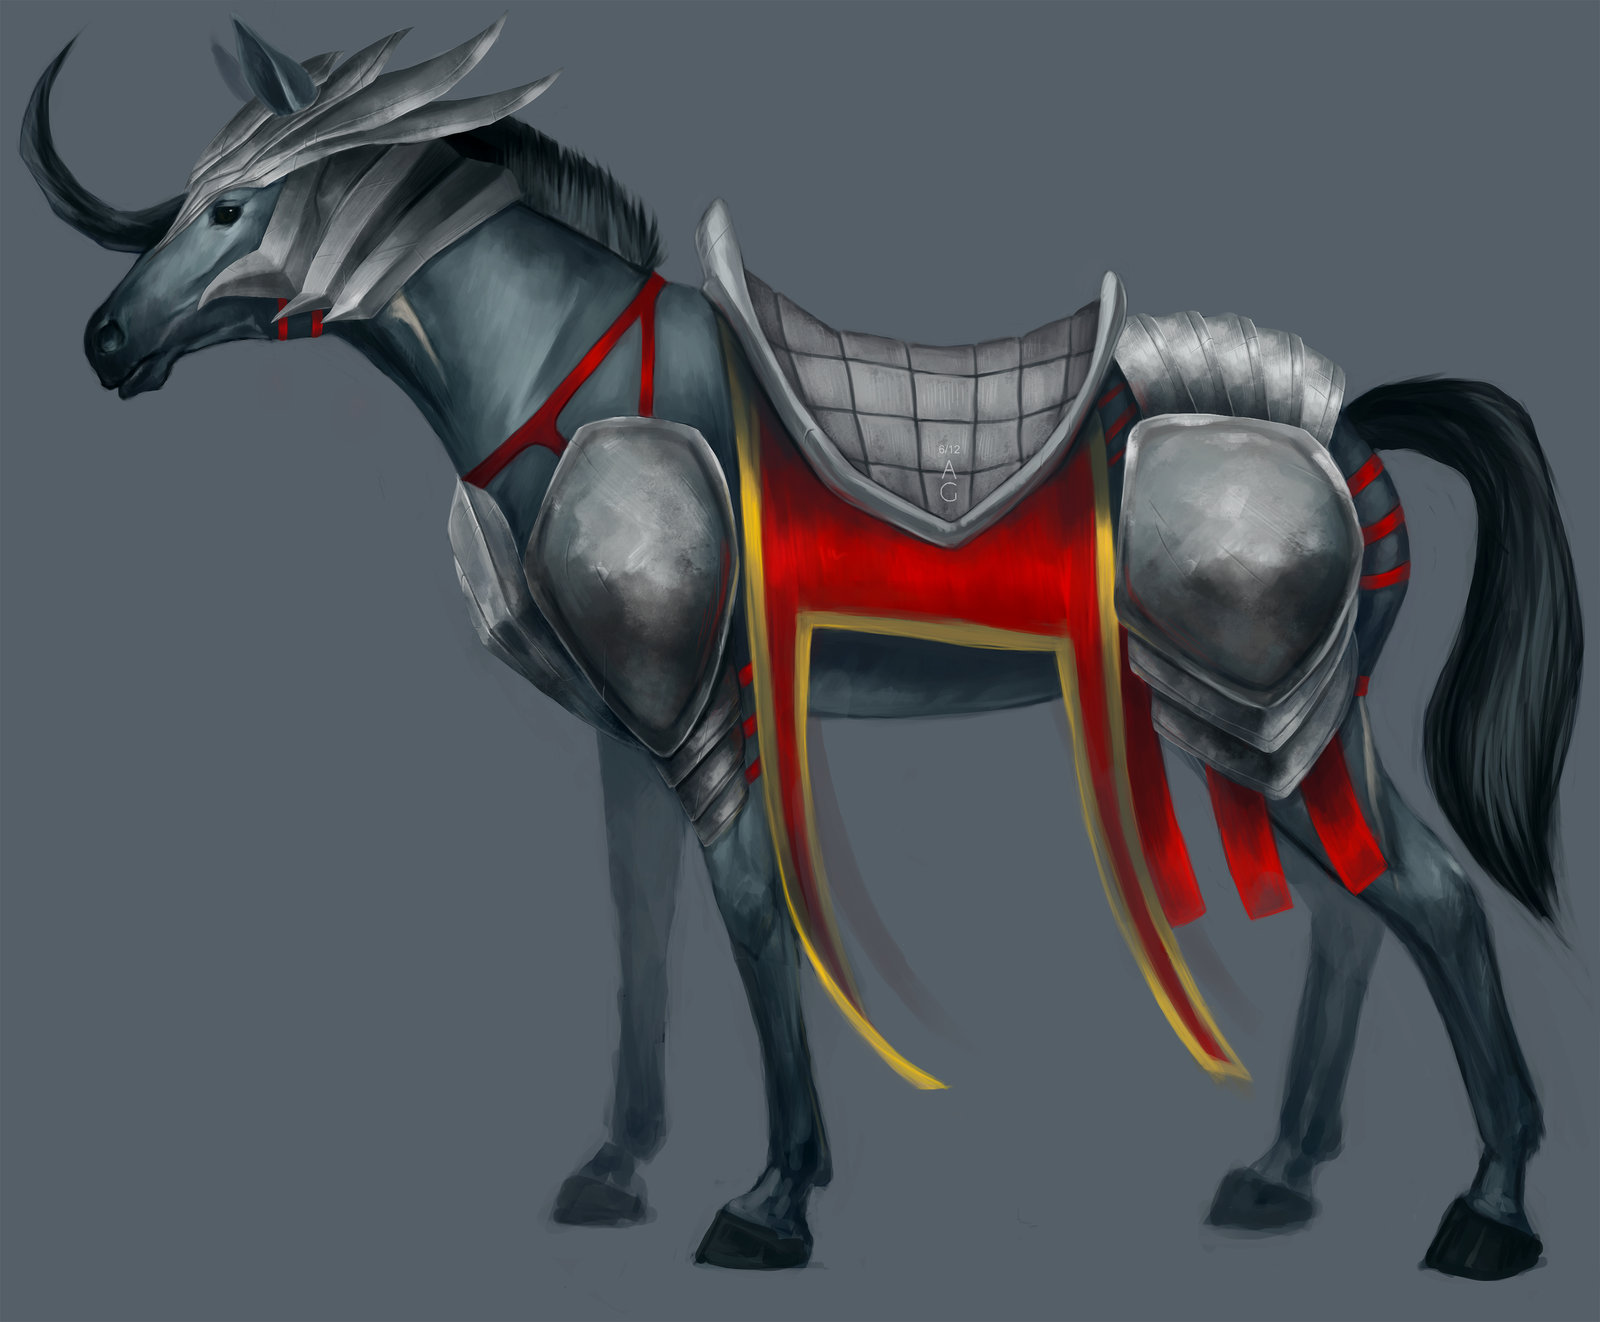 armored_horse___design_by_izonbi-d54h3b8.jpg